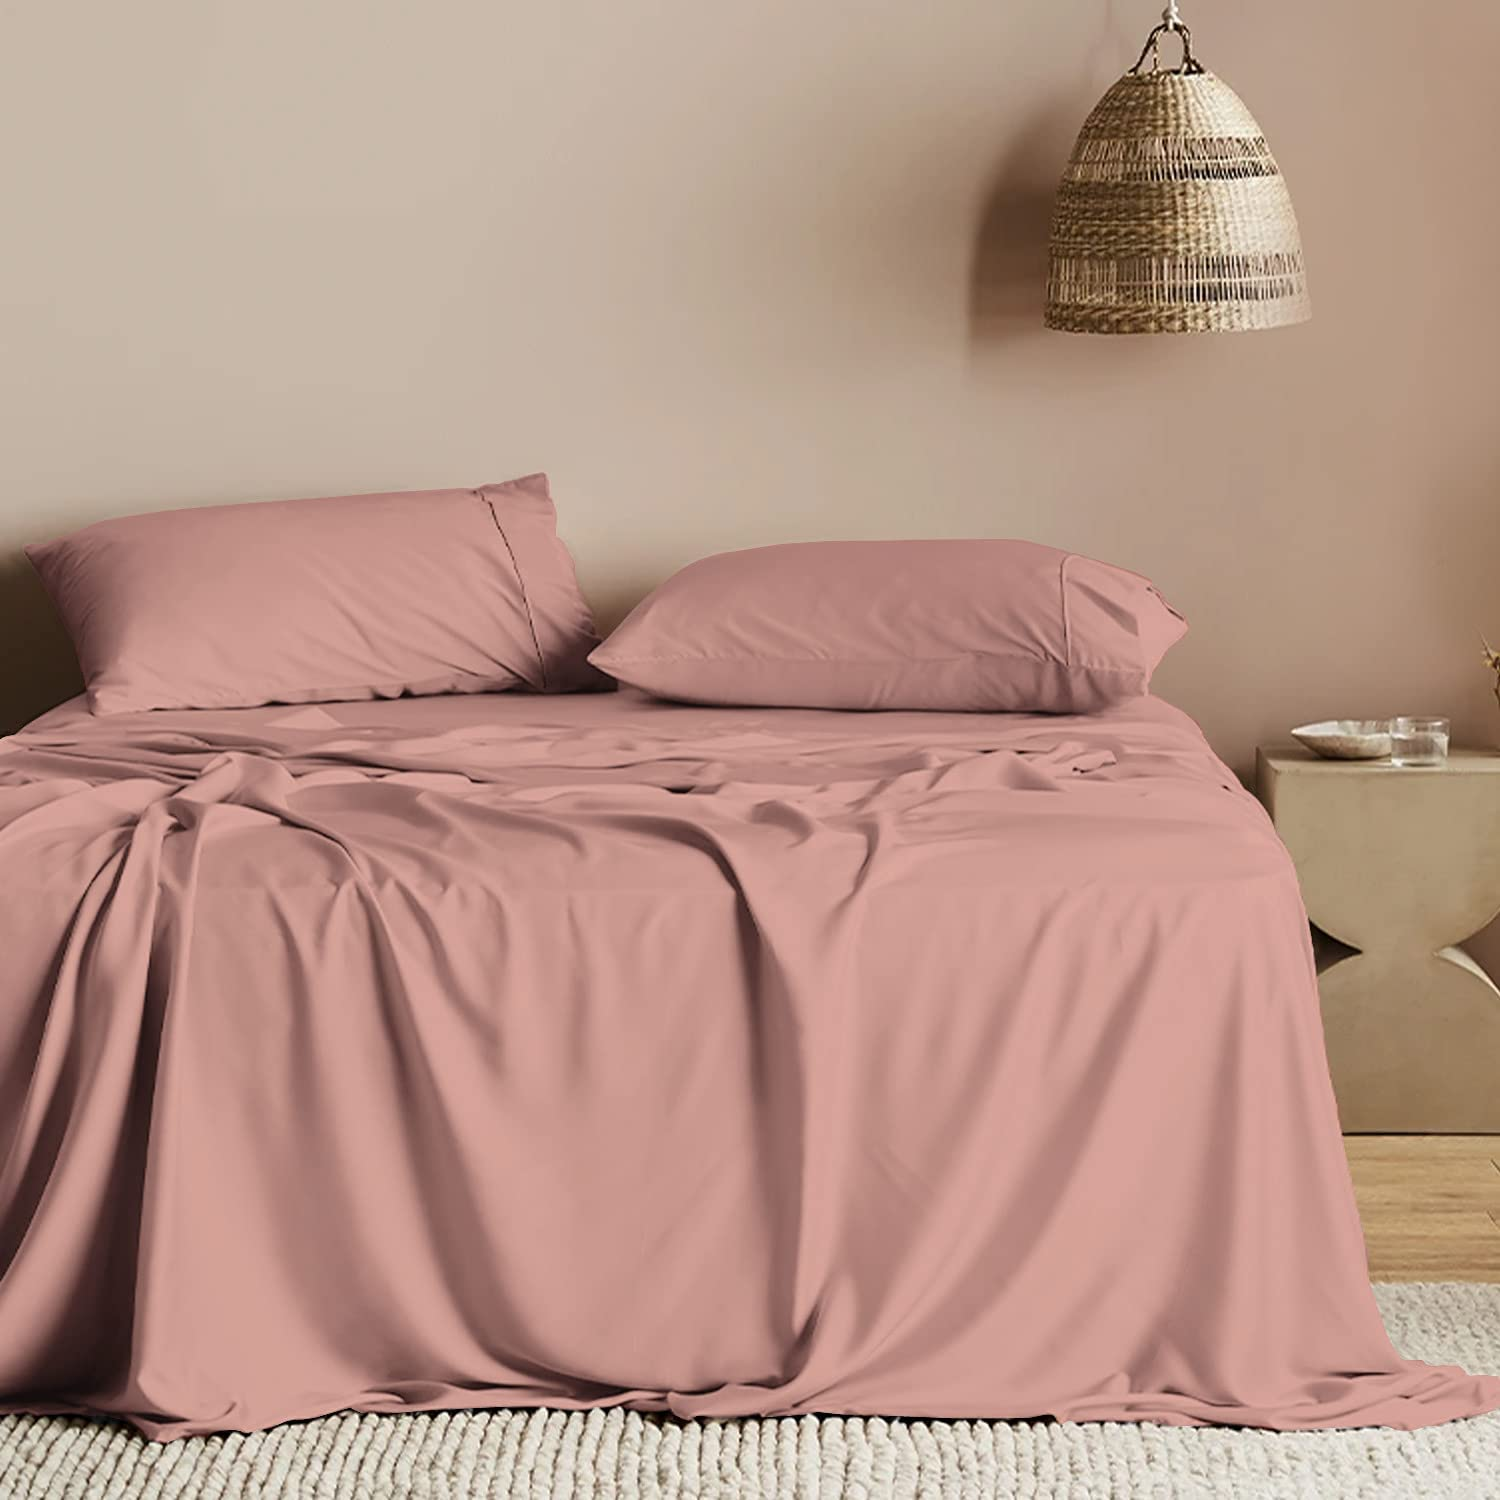 Soft Seasonal Wrap Introduction 600 Thread Count Cotton Queen 100% Lo Rose Flat Sheets Super Special SALE held 1pc